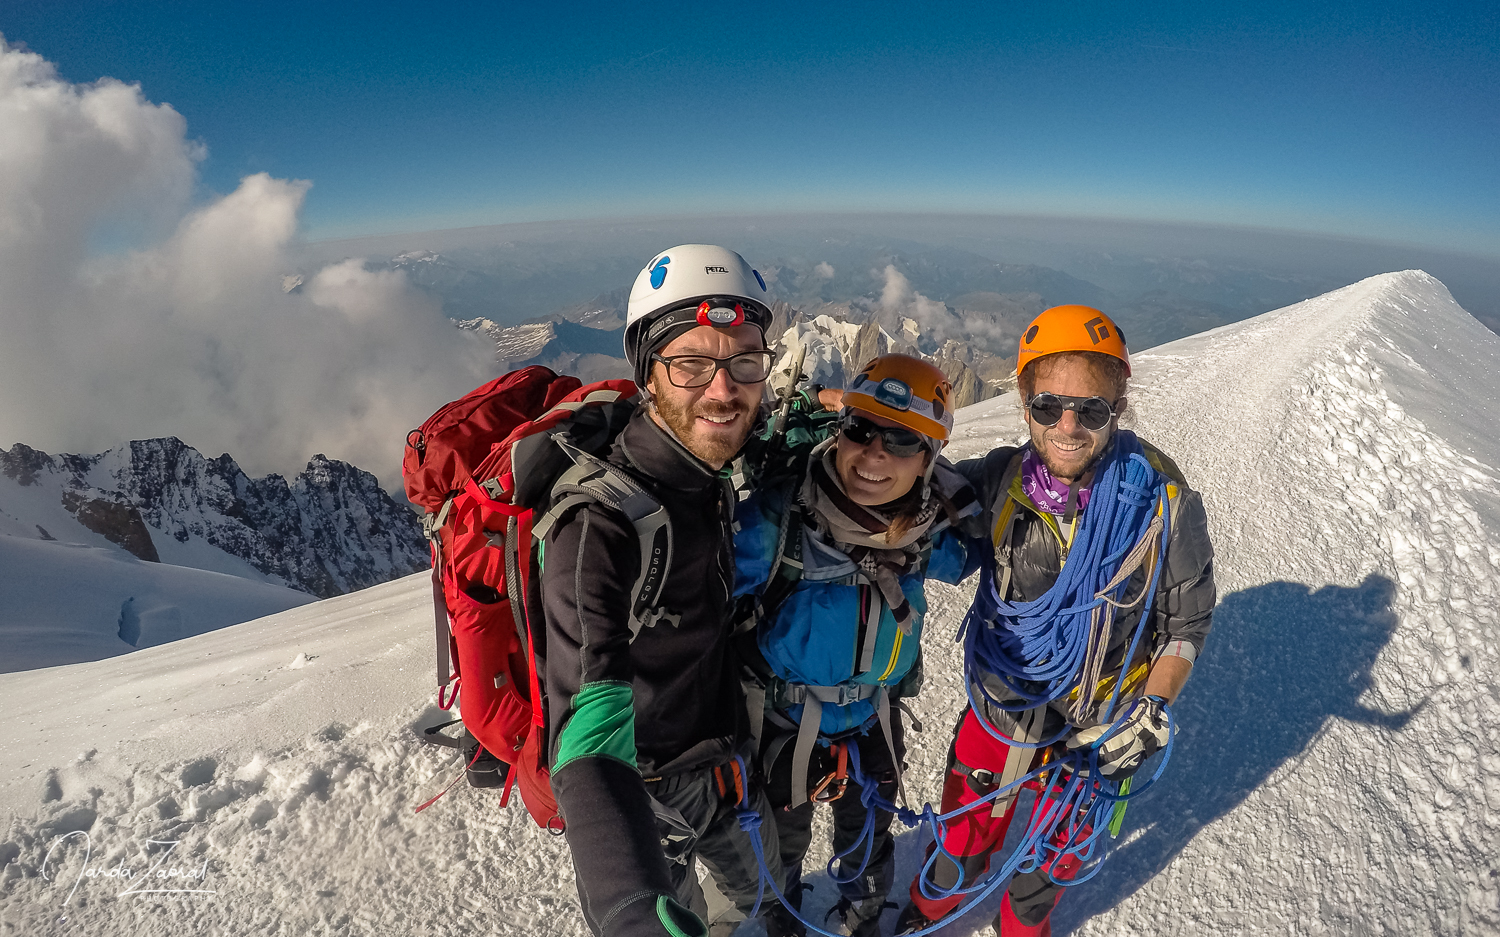 On top of Mont Blanc